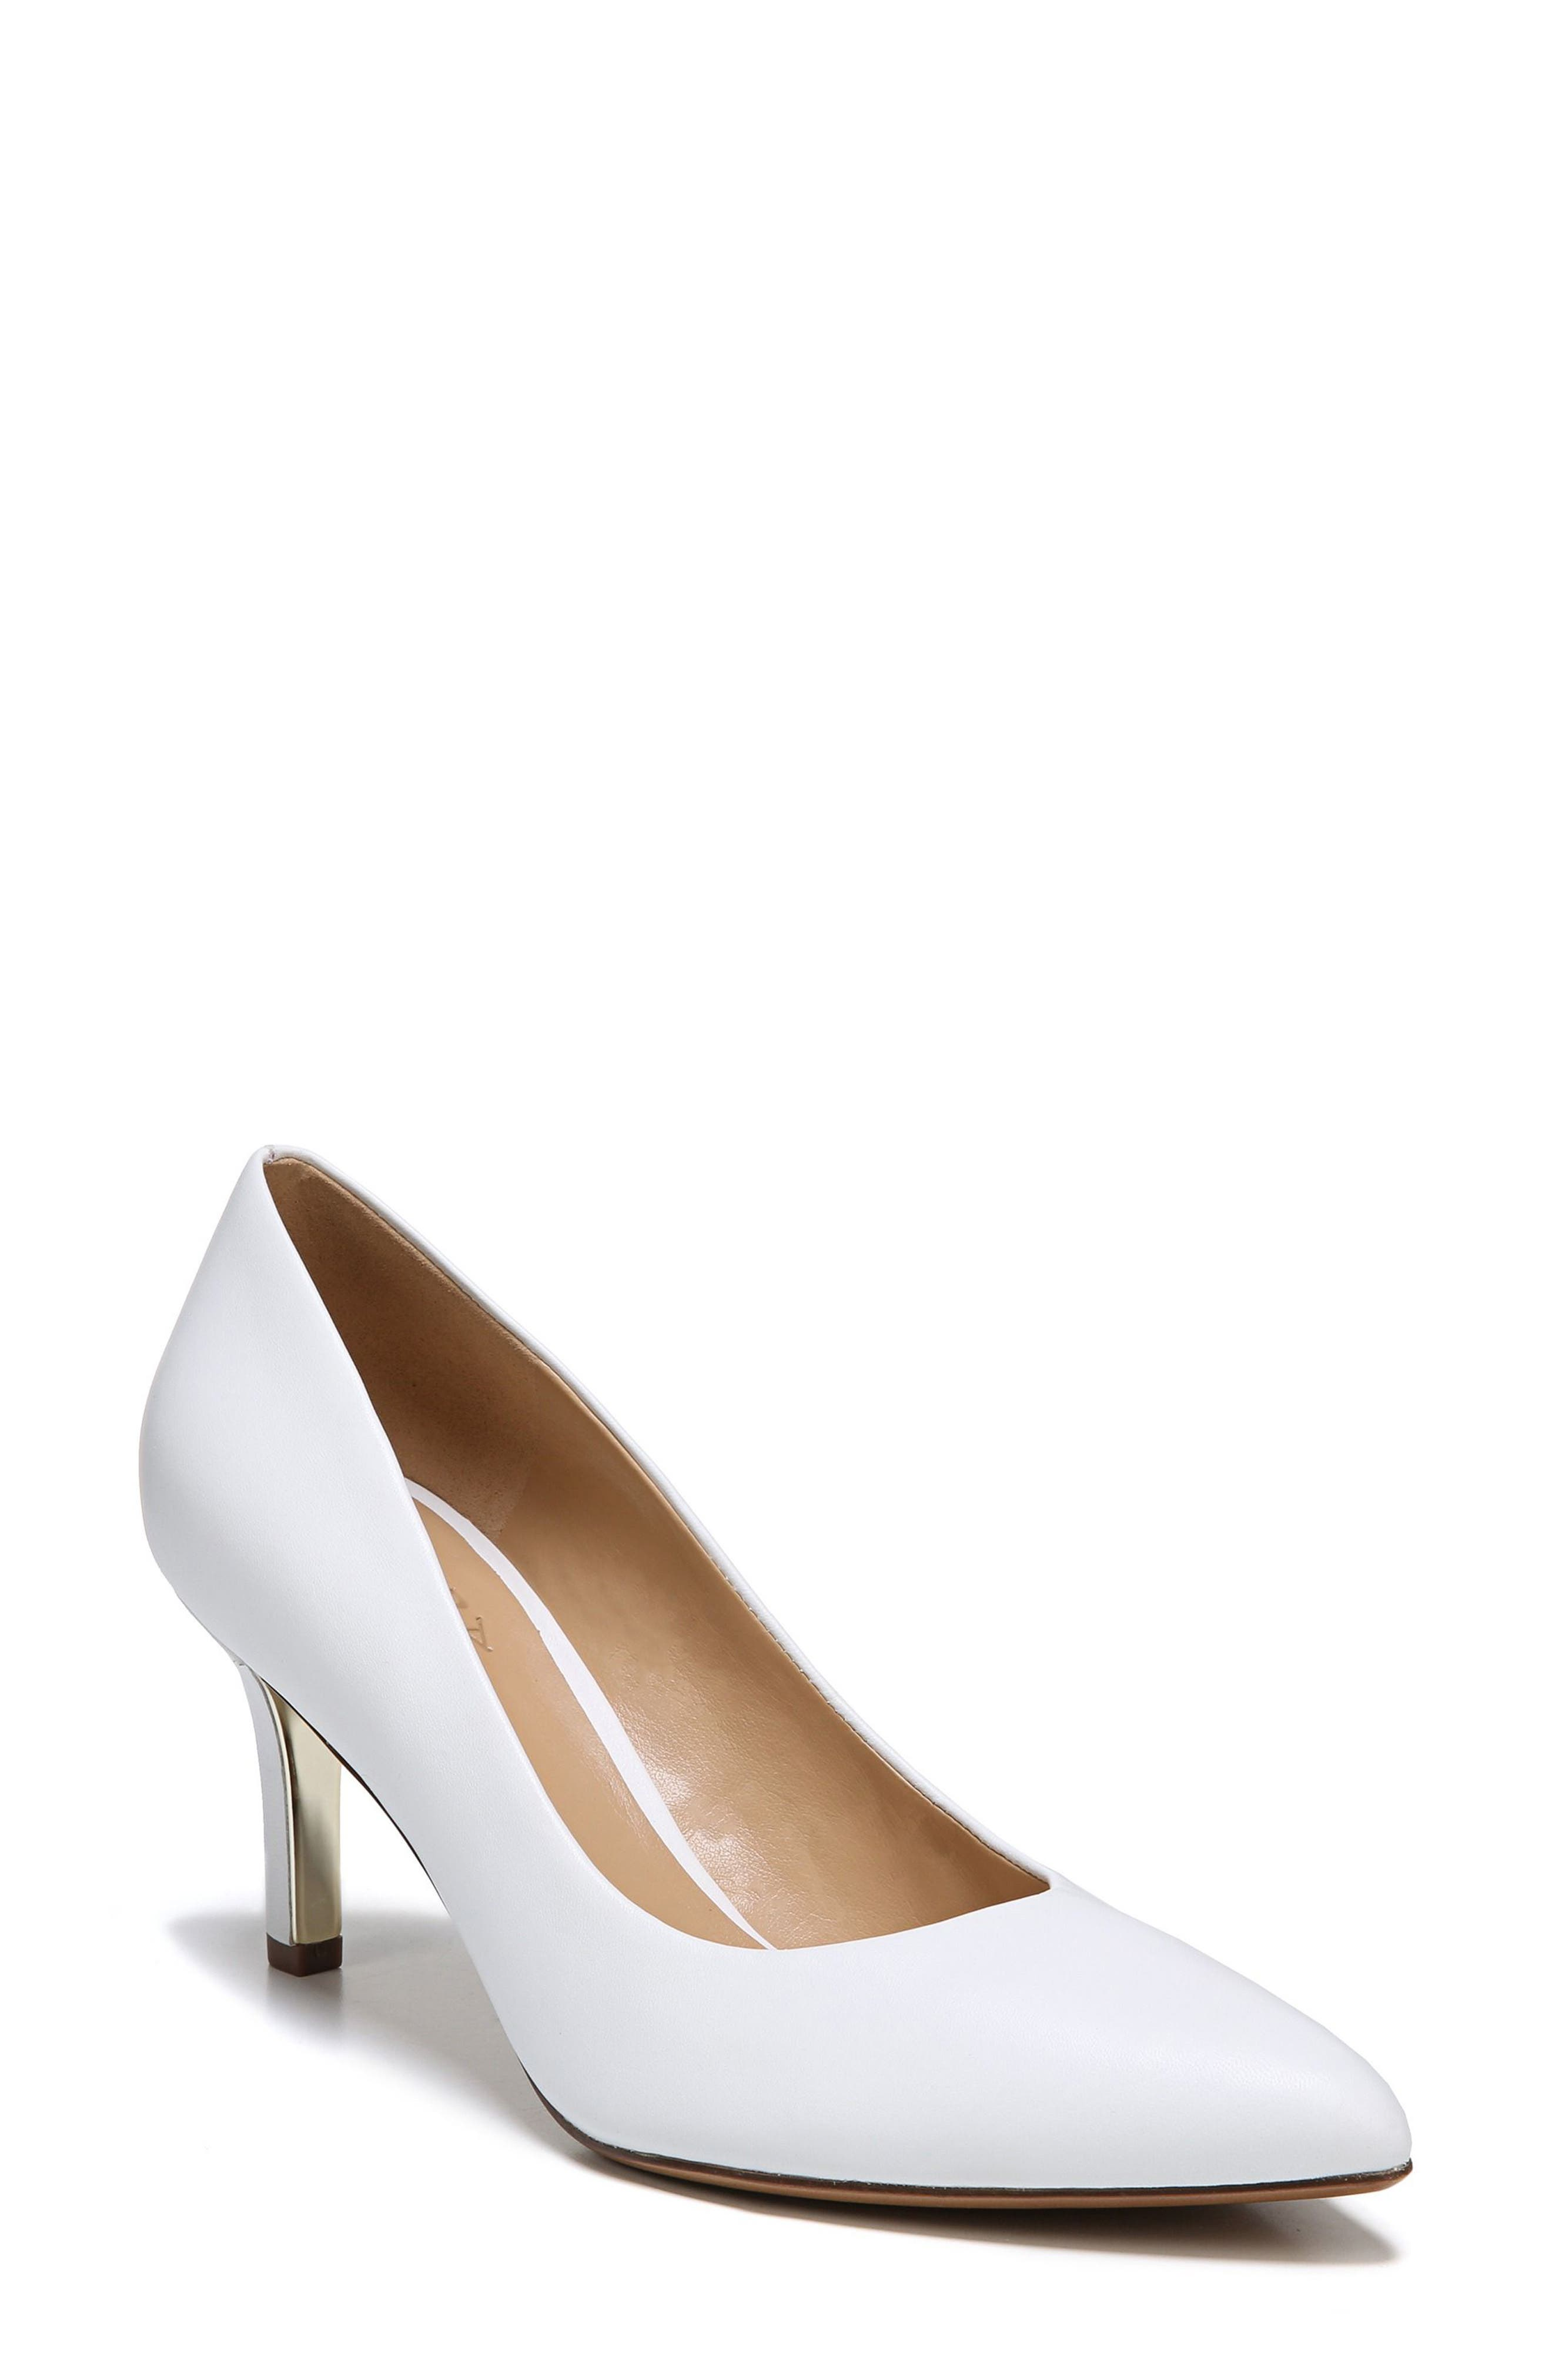 NATURALIZER, Natalie Pointy Toe Pump, Main thumbnail 1, color, WHITE LEATHER